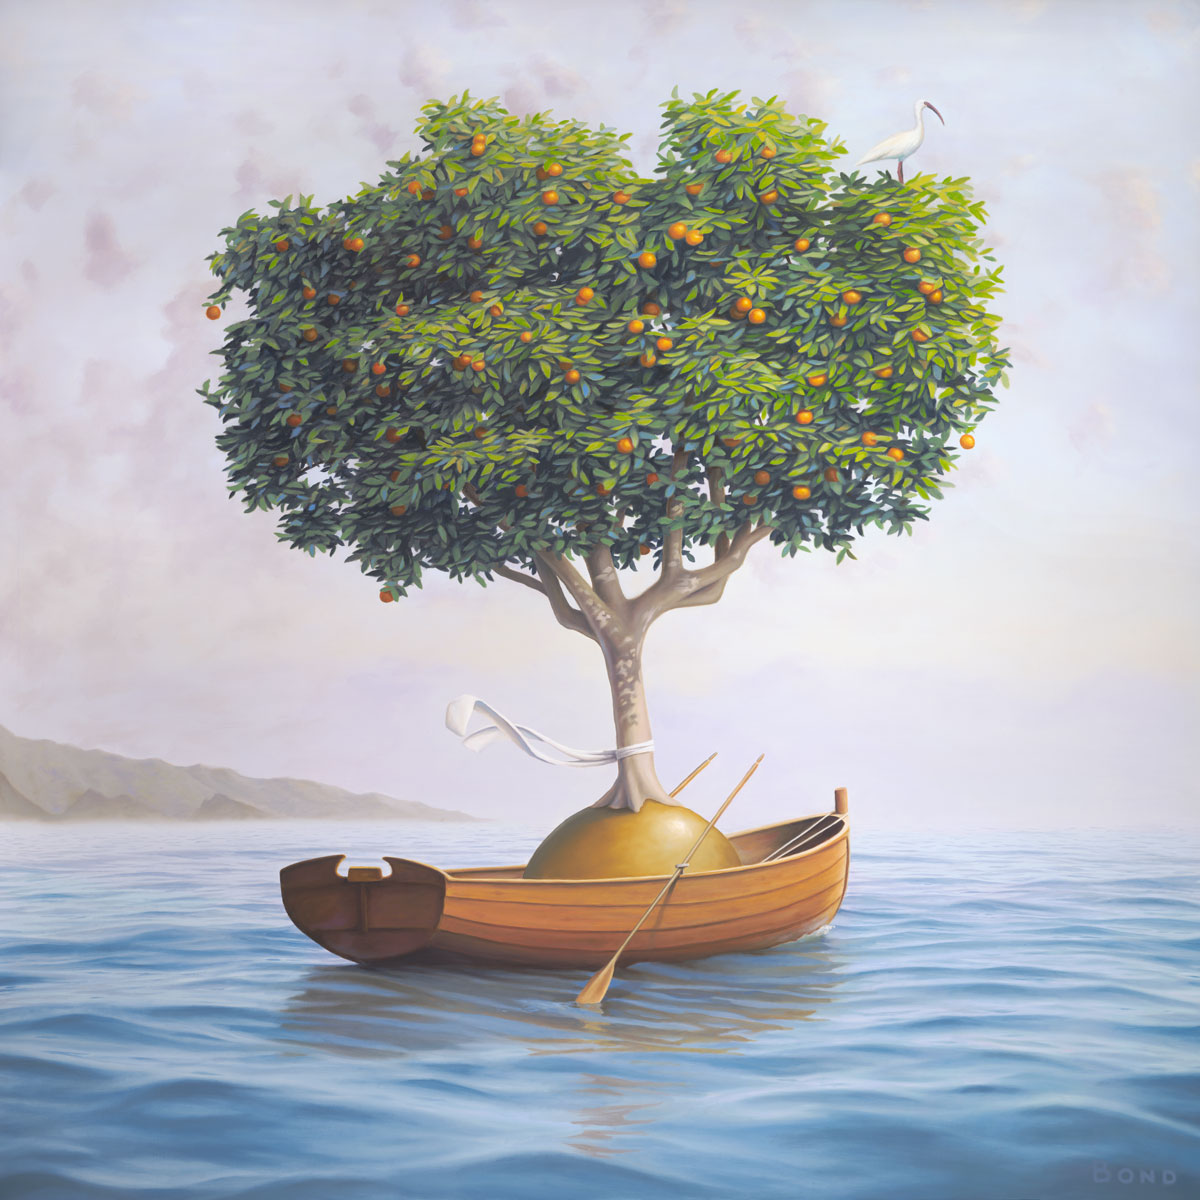 An Expedition of Supreme Benevolence, painting of an orange tree in a rowboat with a scarf on the water, art wtih orange tree, art wtih rowboat, art with ship, art with orb, dreamscape of ocean illusion, painting wtih optical illustion, art with ocean wave and surf, soulful uplifting inspirational art, soul stirring illusion art, romantic art,  surrealism, surreal art, dreamlike imagery, fanciful art, fantasy art, dreamscape visual, metaphysical art, spiritual painting, metaphysical painting, spiritual art, whimsical art, whimsy art, dream art, fantastic realism art, limited edition giclee, signed art print, fine art reproduction, original magic realism oil painting by Paul Bond